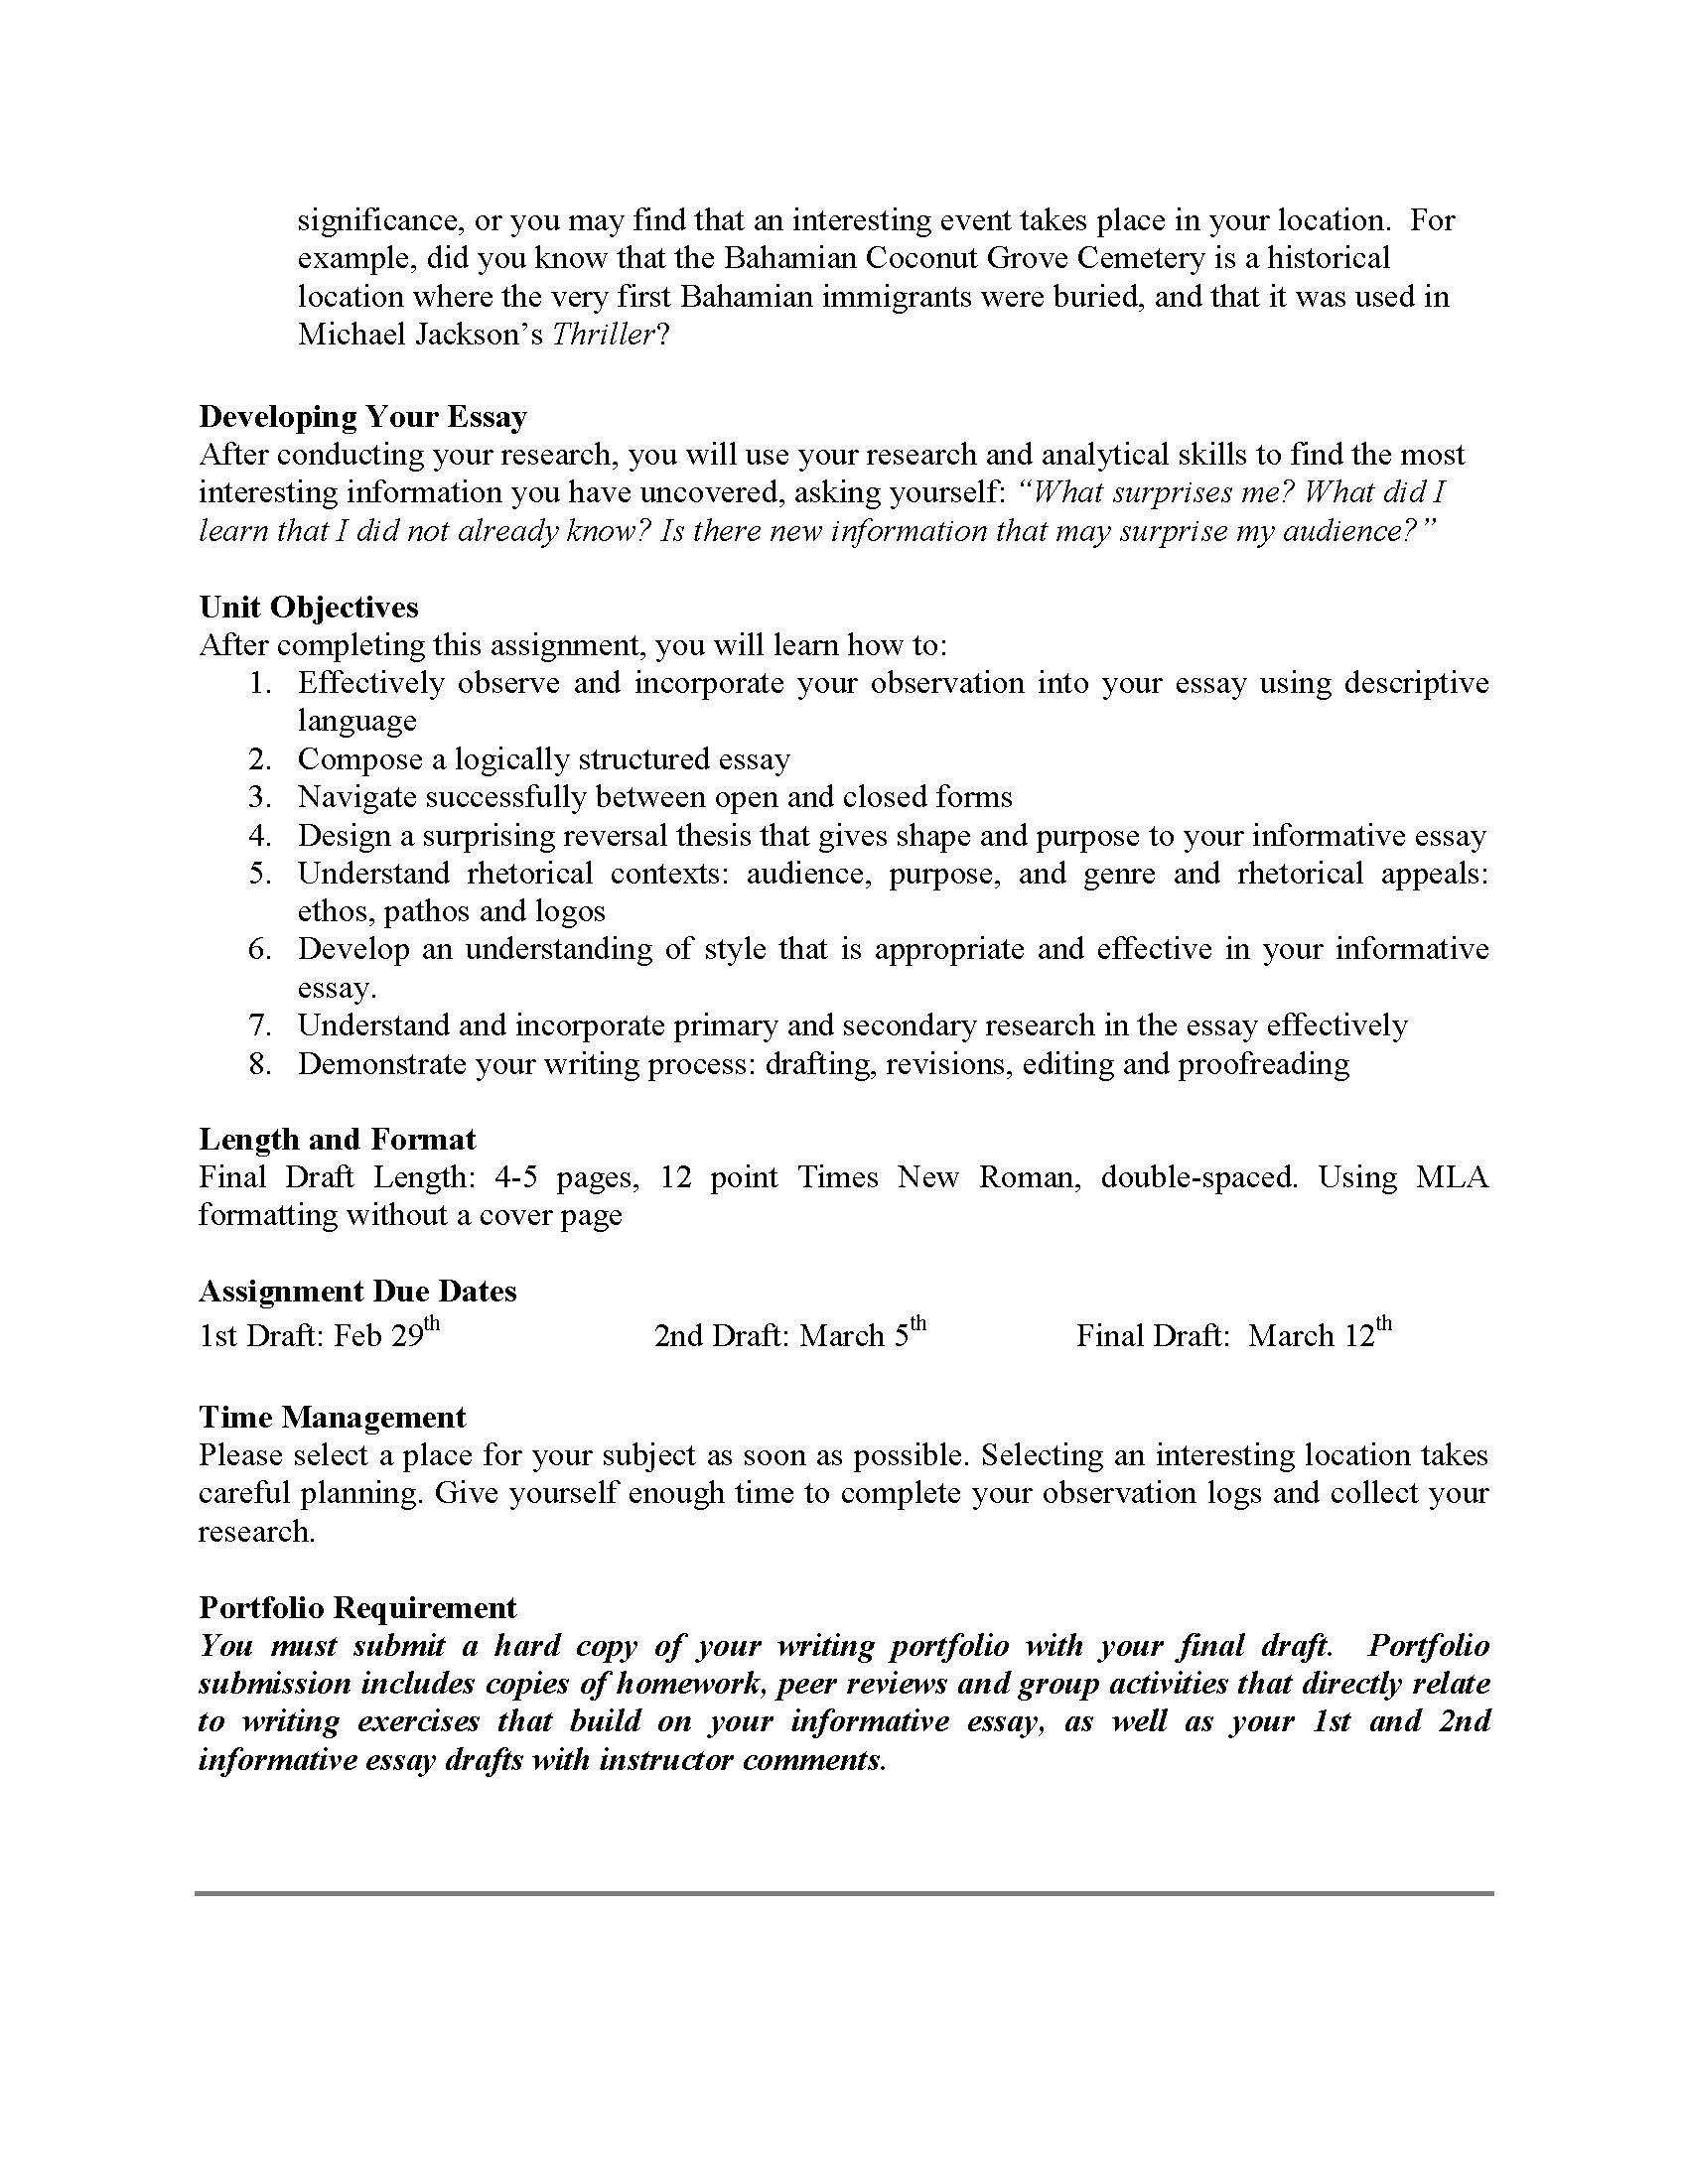 014 Informative Essay Unit Assignment Page 2 Dreaded Prompts 5th Grade 9th Graphic Organizer Full